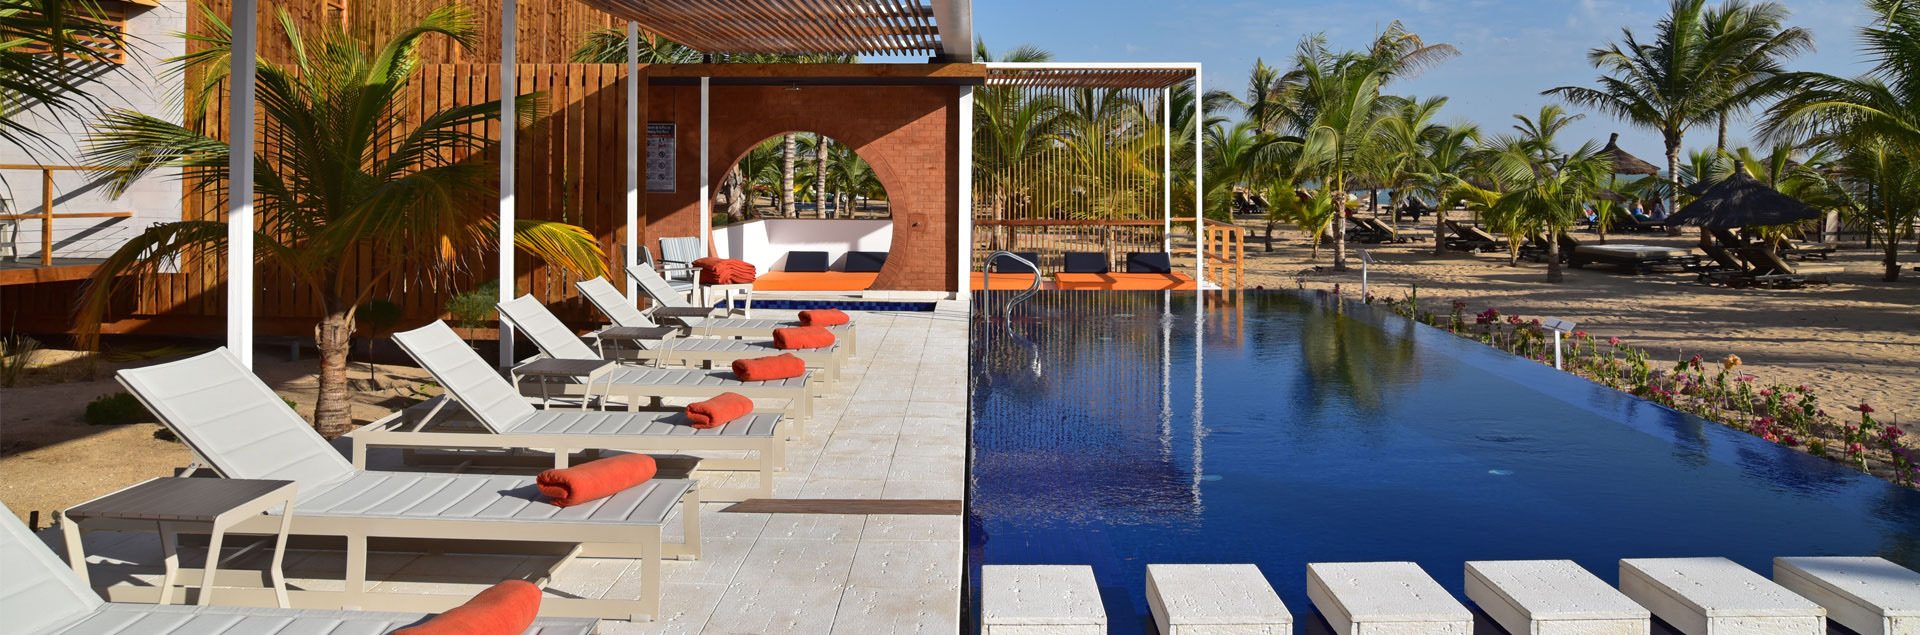 chambres-blue-bay-senegal-hotel-luxe-02